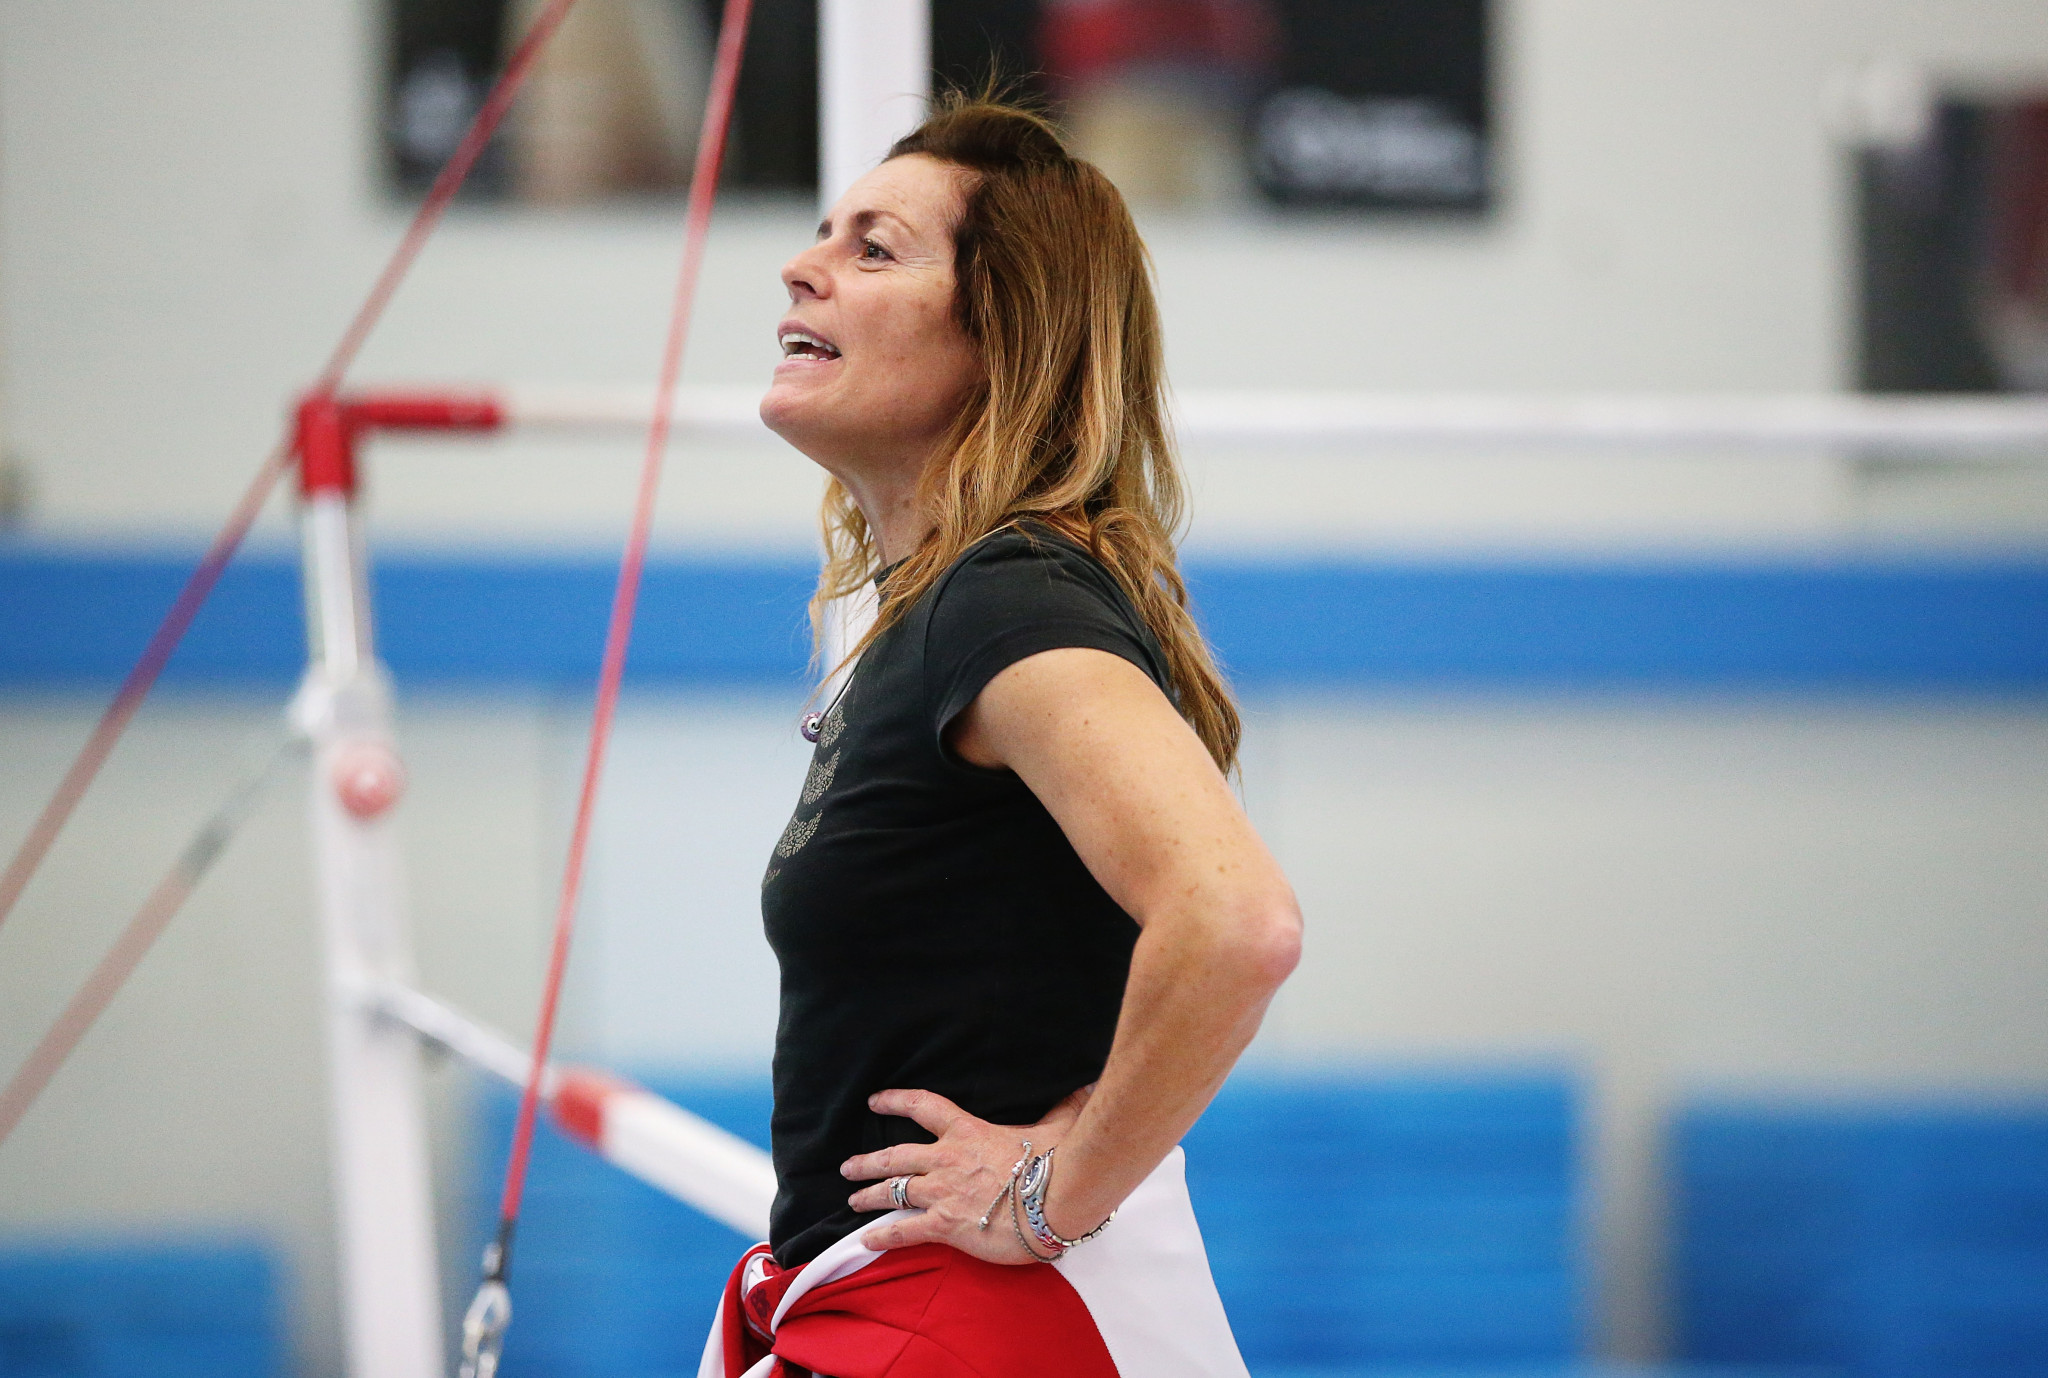 British Gymnastics head coach temporarily stands aside amid abuse allegations